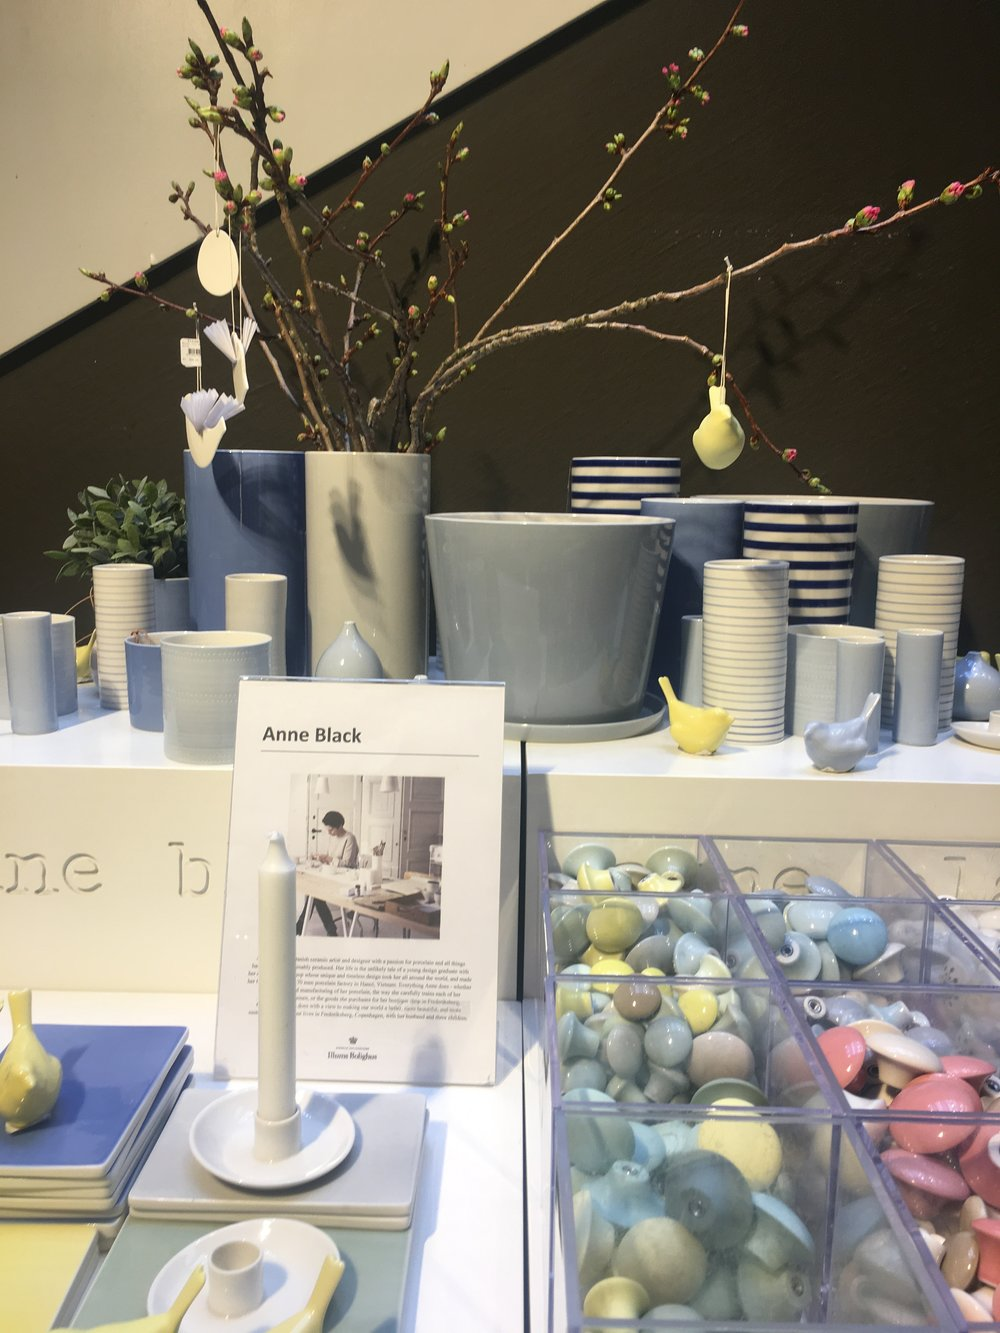 HOME/ INTERIORS DEPARTMENTS STORE ILLUMS BOLIGHUS IN COPENHAGEN. DEDICATED TO HOMEWARE.